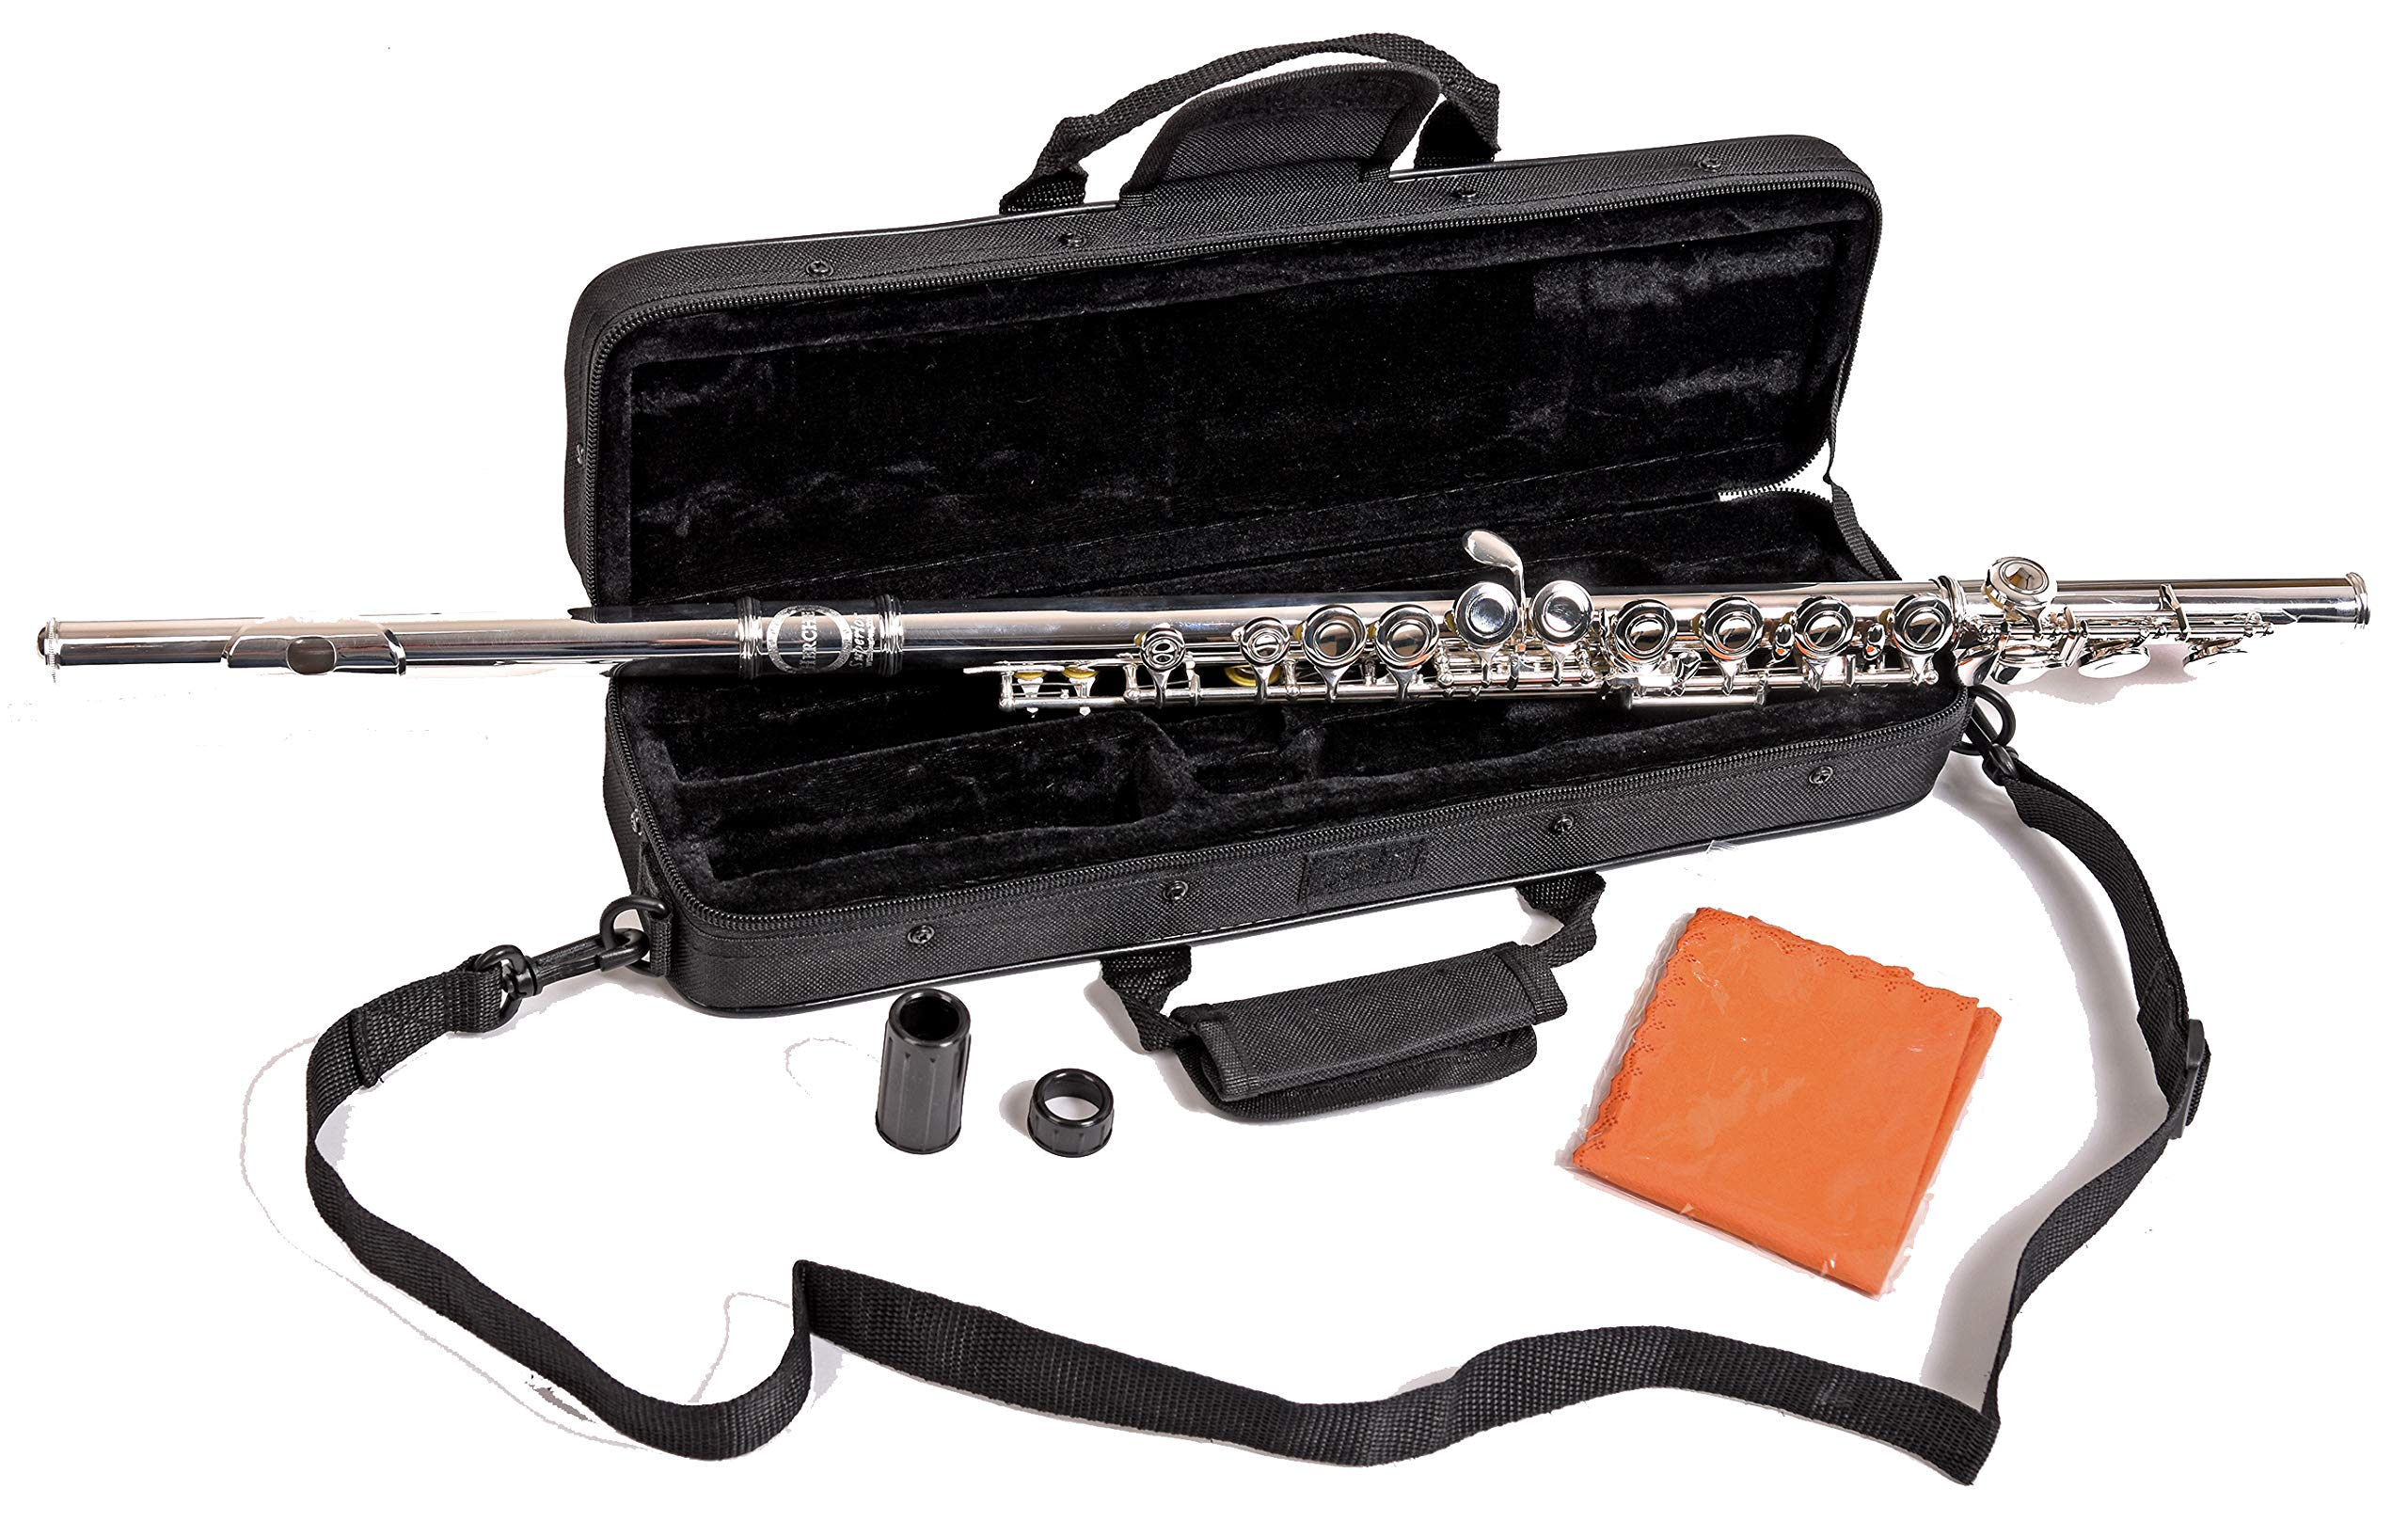 Herche Superior Flute FL-297 - Best for Students - Silver Plated Body with Durable Silver Plated Keys - Split E Mechanism, Plush Lined Flute Case with Shoulder Strap, Treated Pads and Cleaning Rod All by Herche